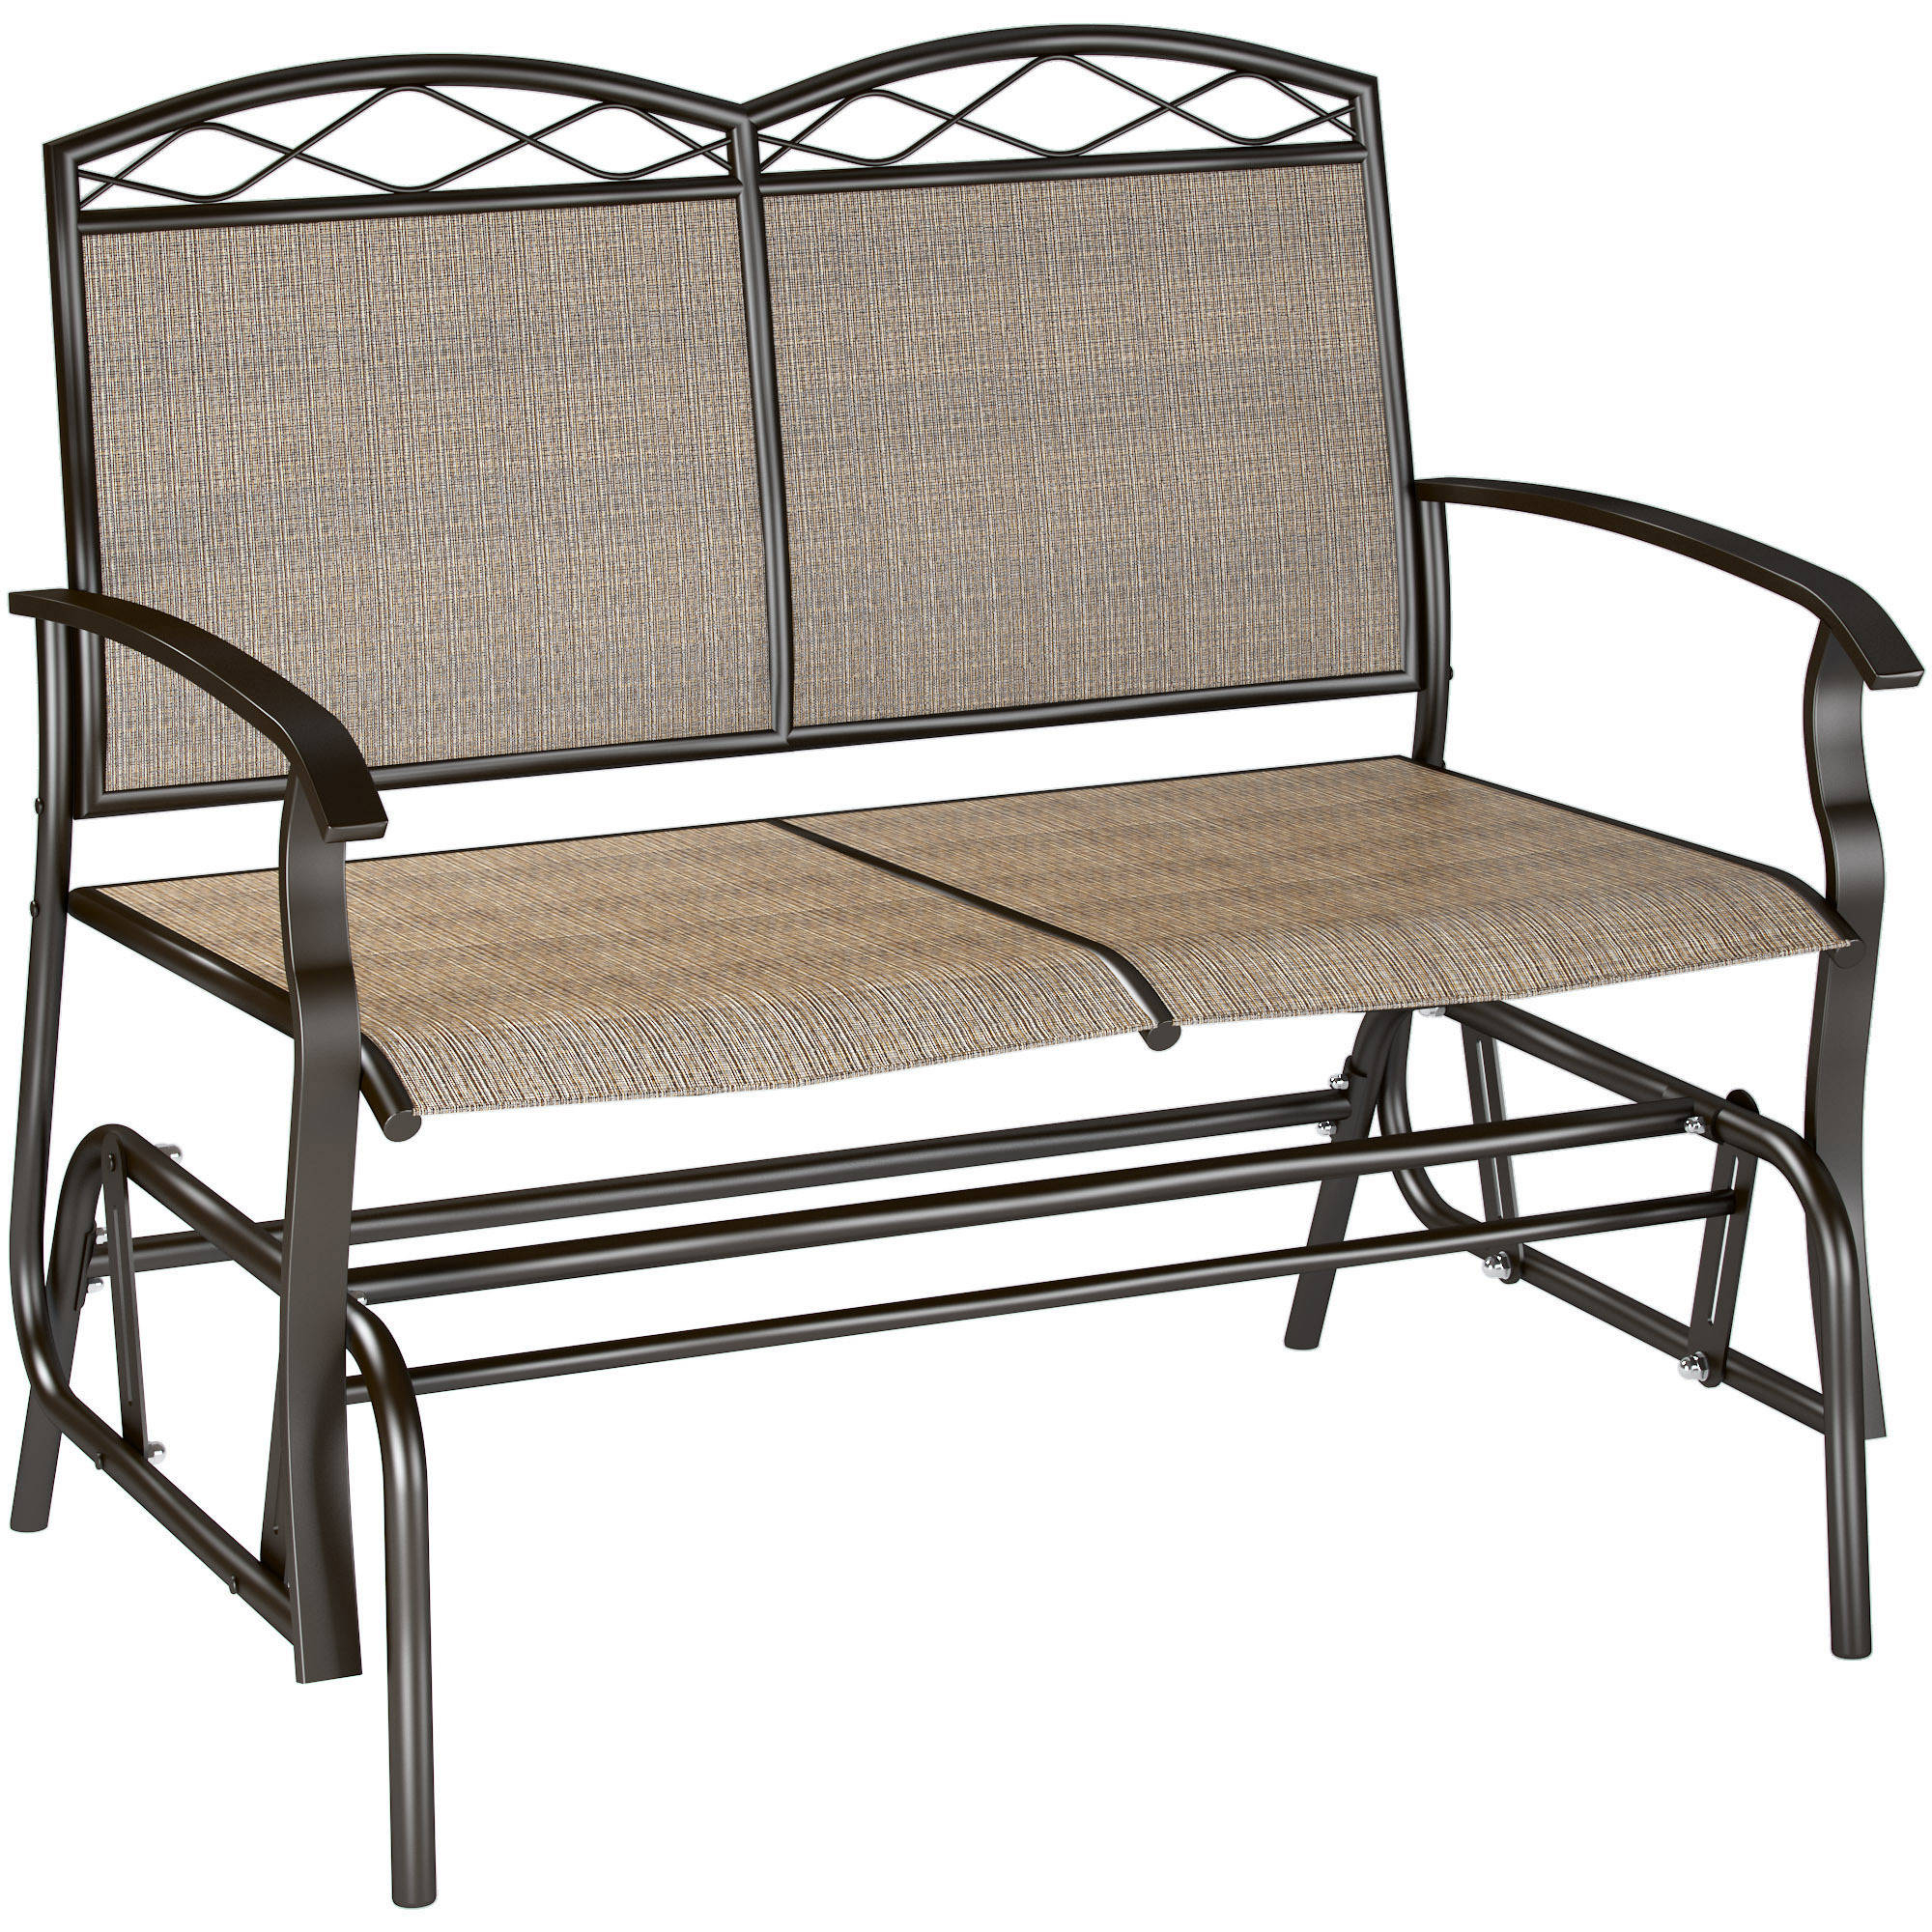 Speckled Glider Benches Pertaining To Well Liked Corliving Speckled Brown Patio Double Glider – Walmart (View 5 of 30)